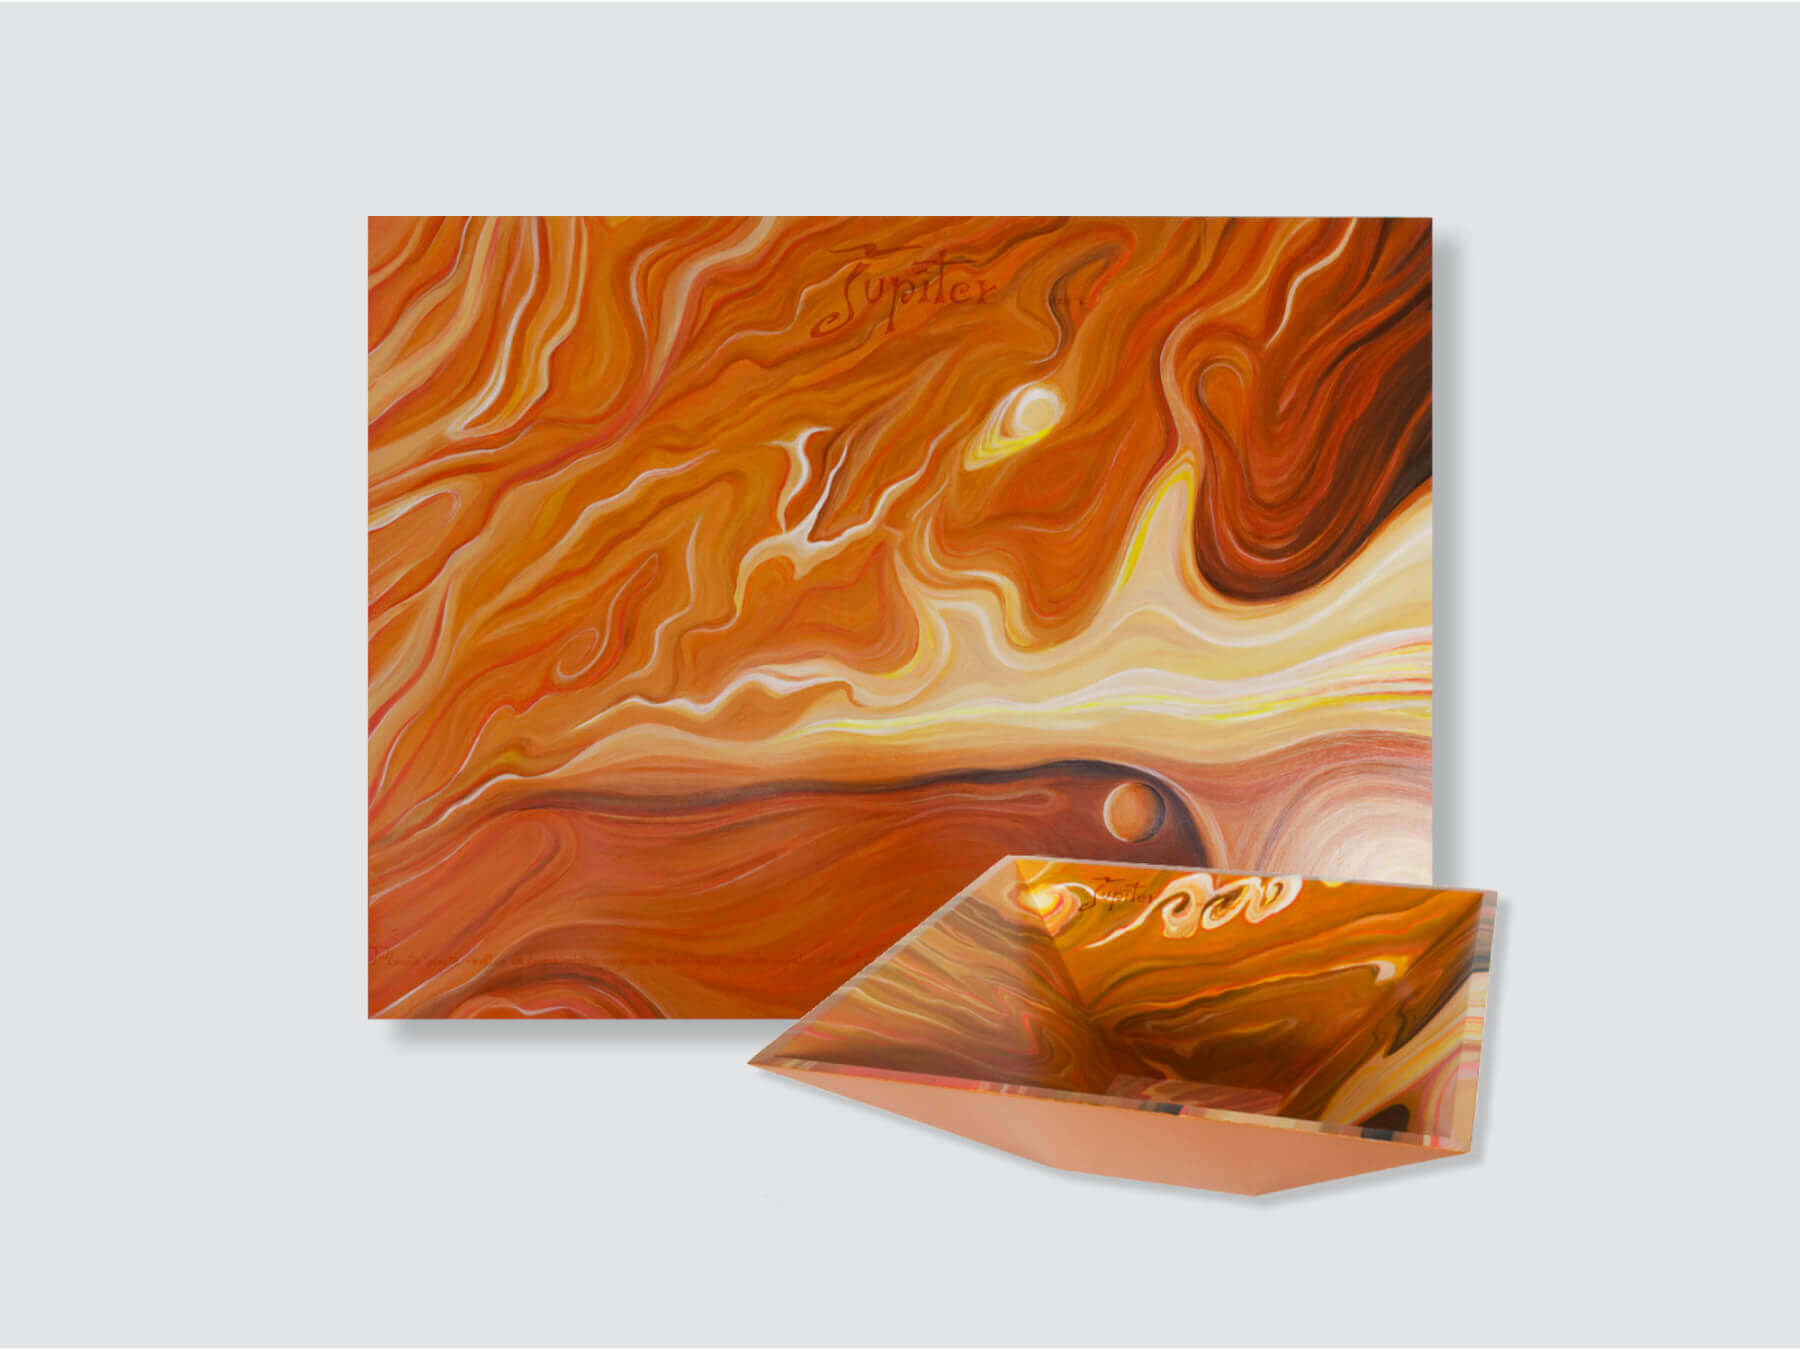 """Jupiter Planet"" Painting & Pyramidal Bowl - 92x70x5cm + 45x45x15cm / 36.2x27.5x2 in +  17.7x17.7x5.9 in"